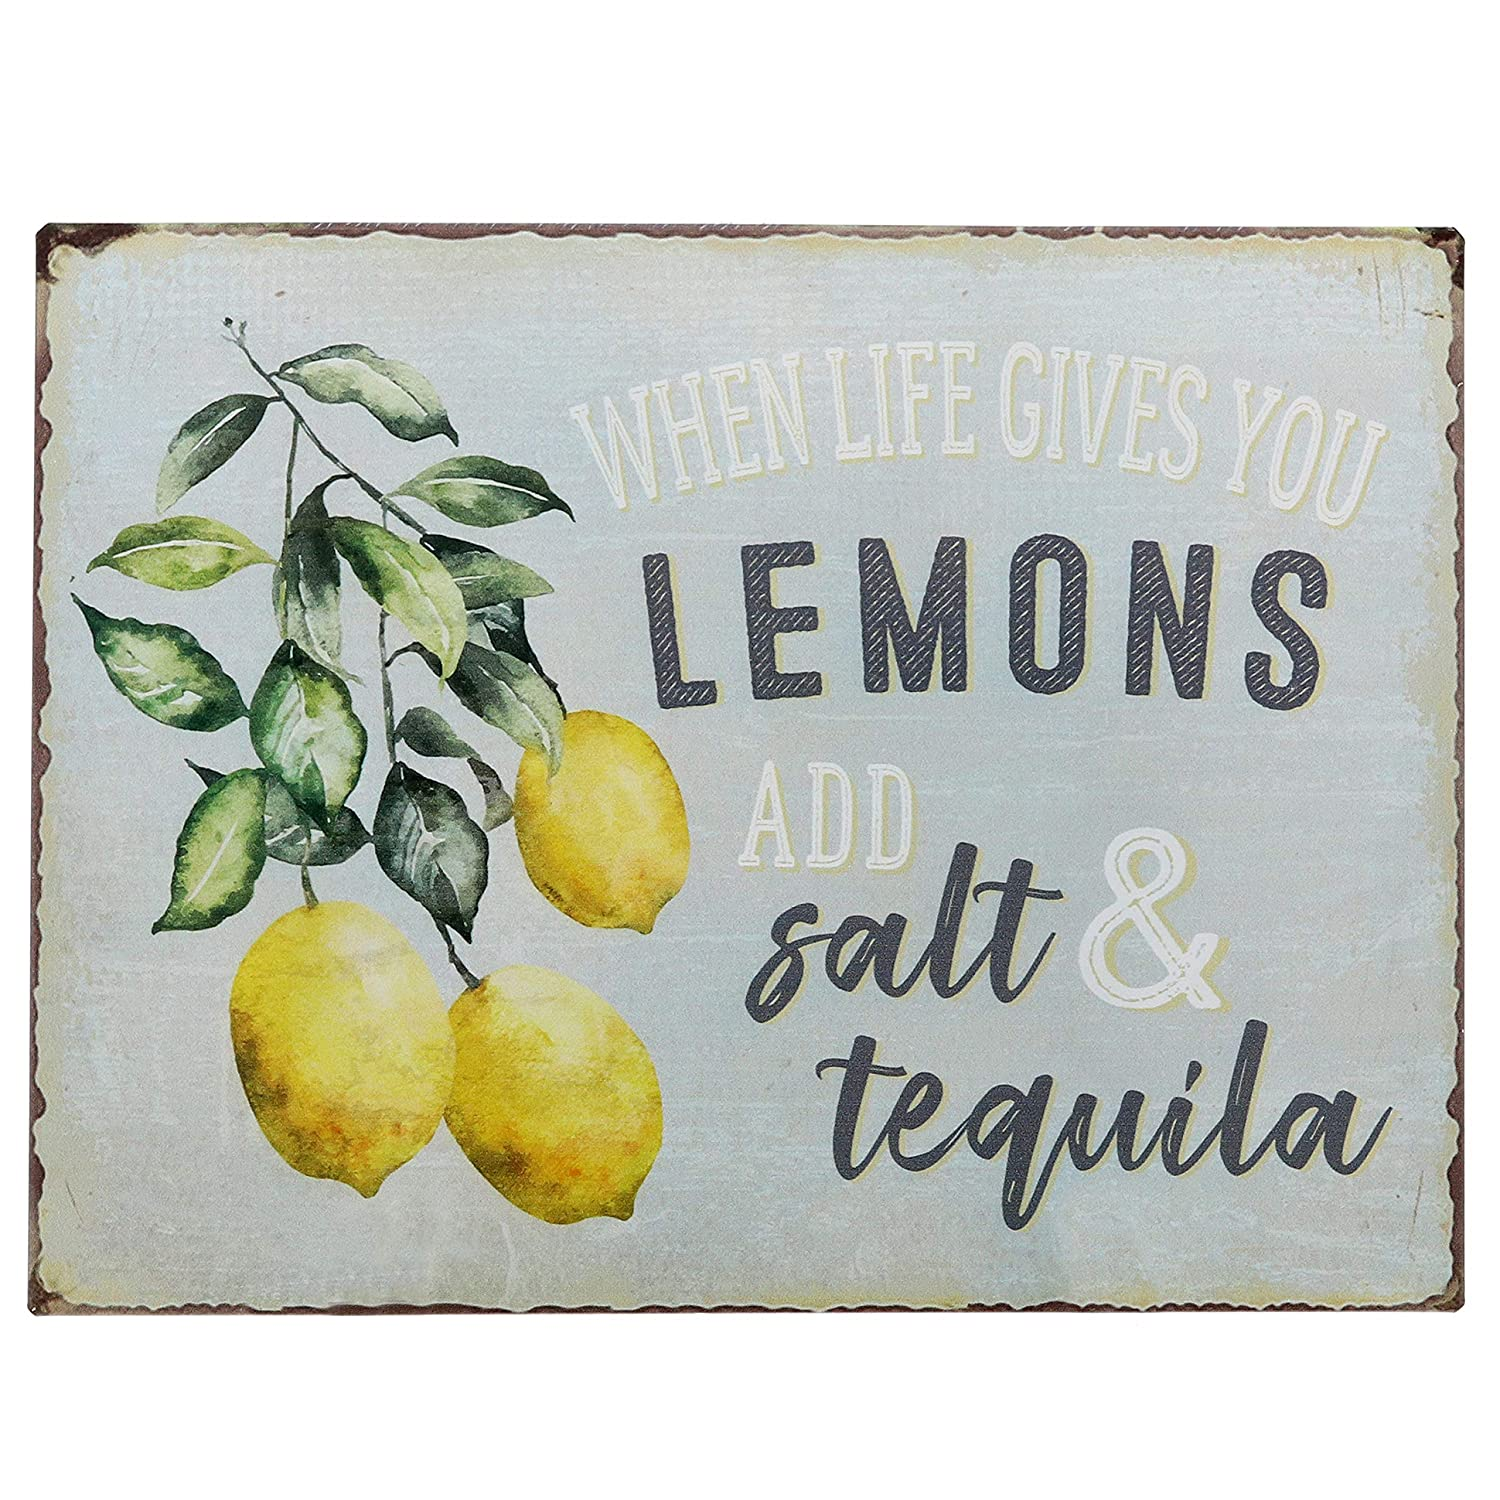 "Barnyard Designs When Life Gives You Lemons Add Salt & Tequila Funny Retro Vintage Tin Bar Sign Country Home Decor 13"" x 10"""